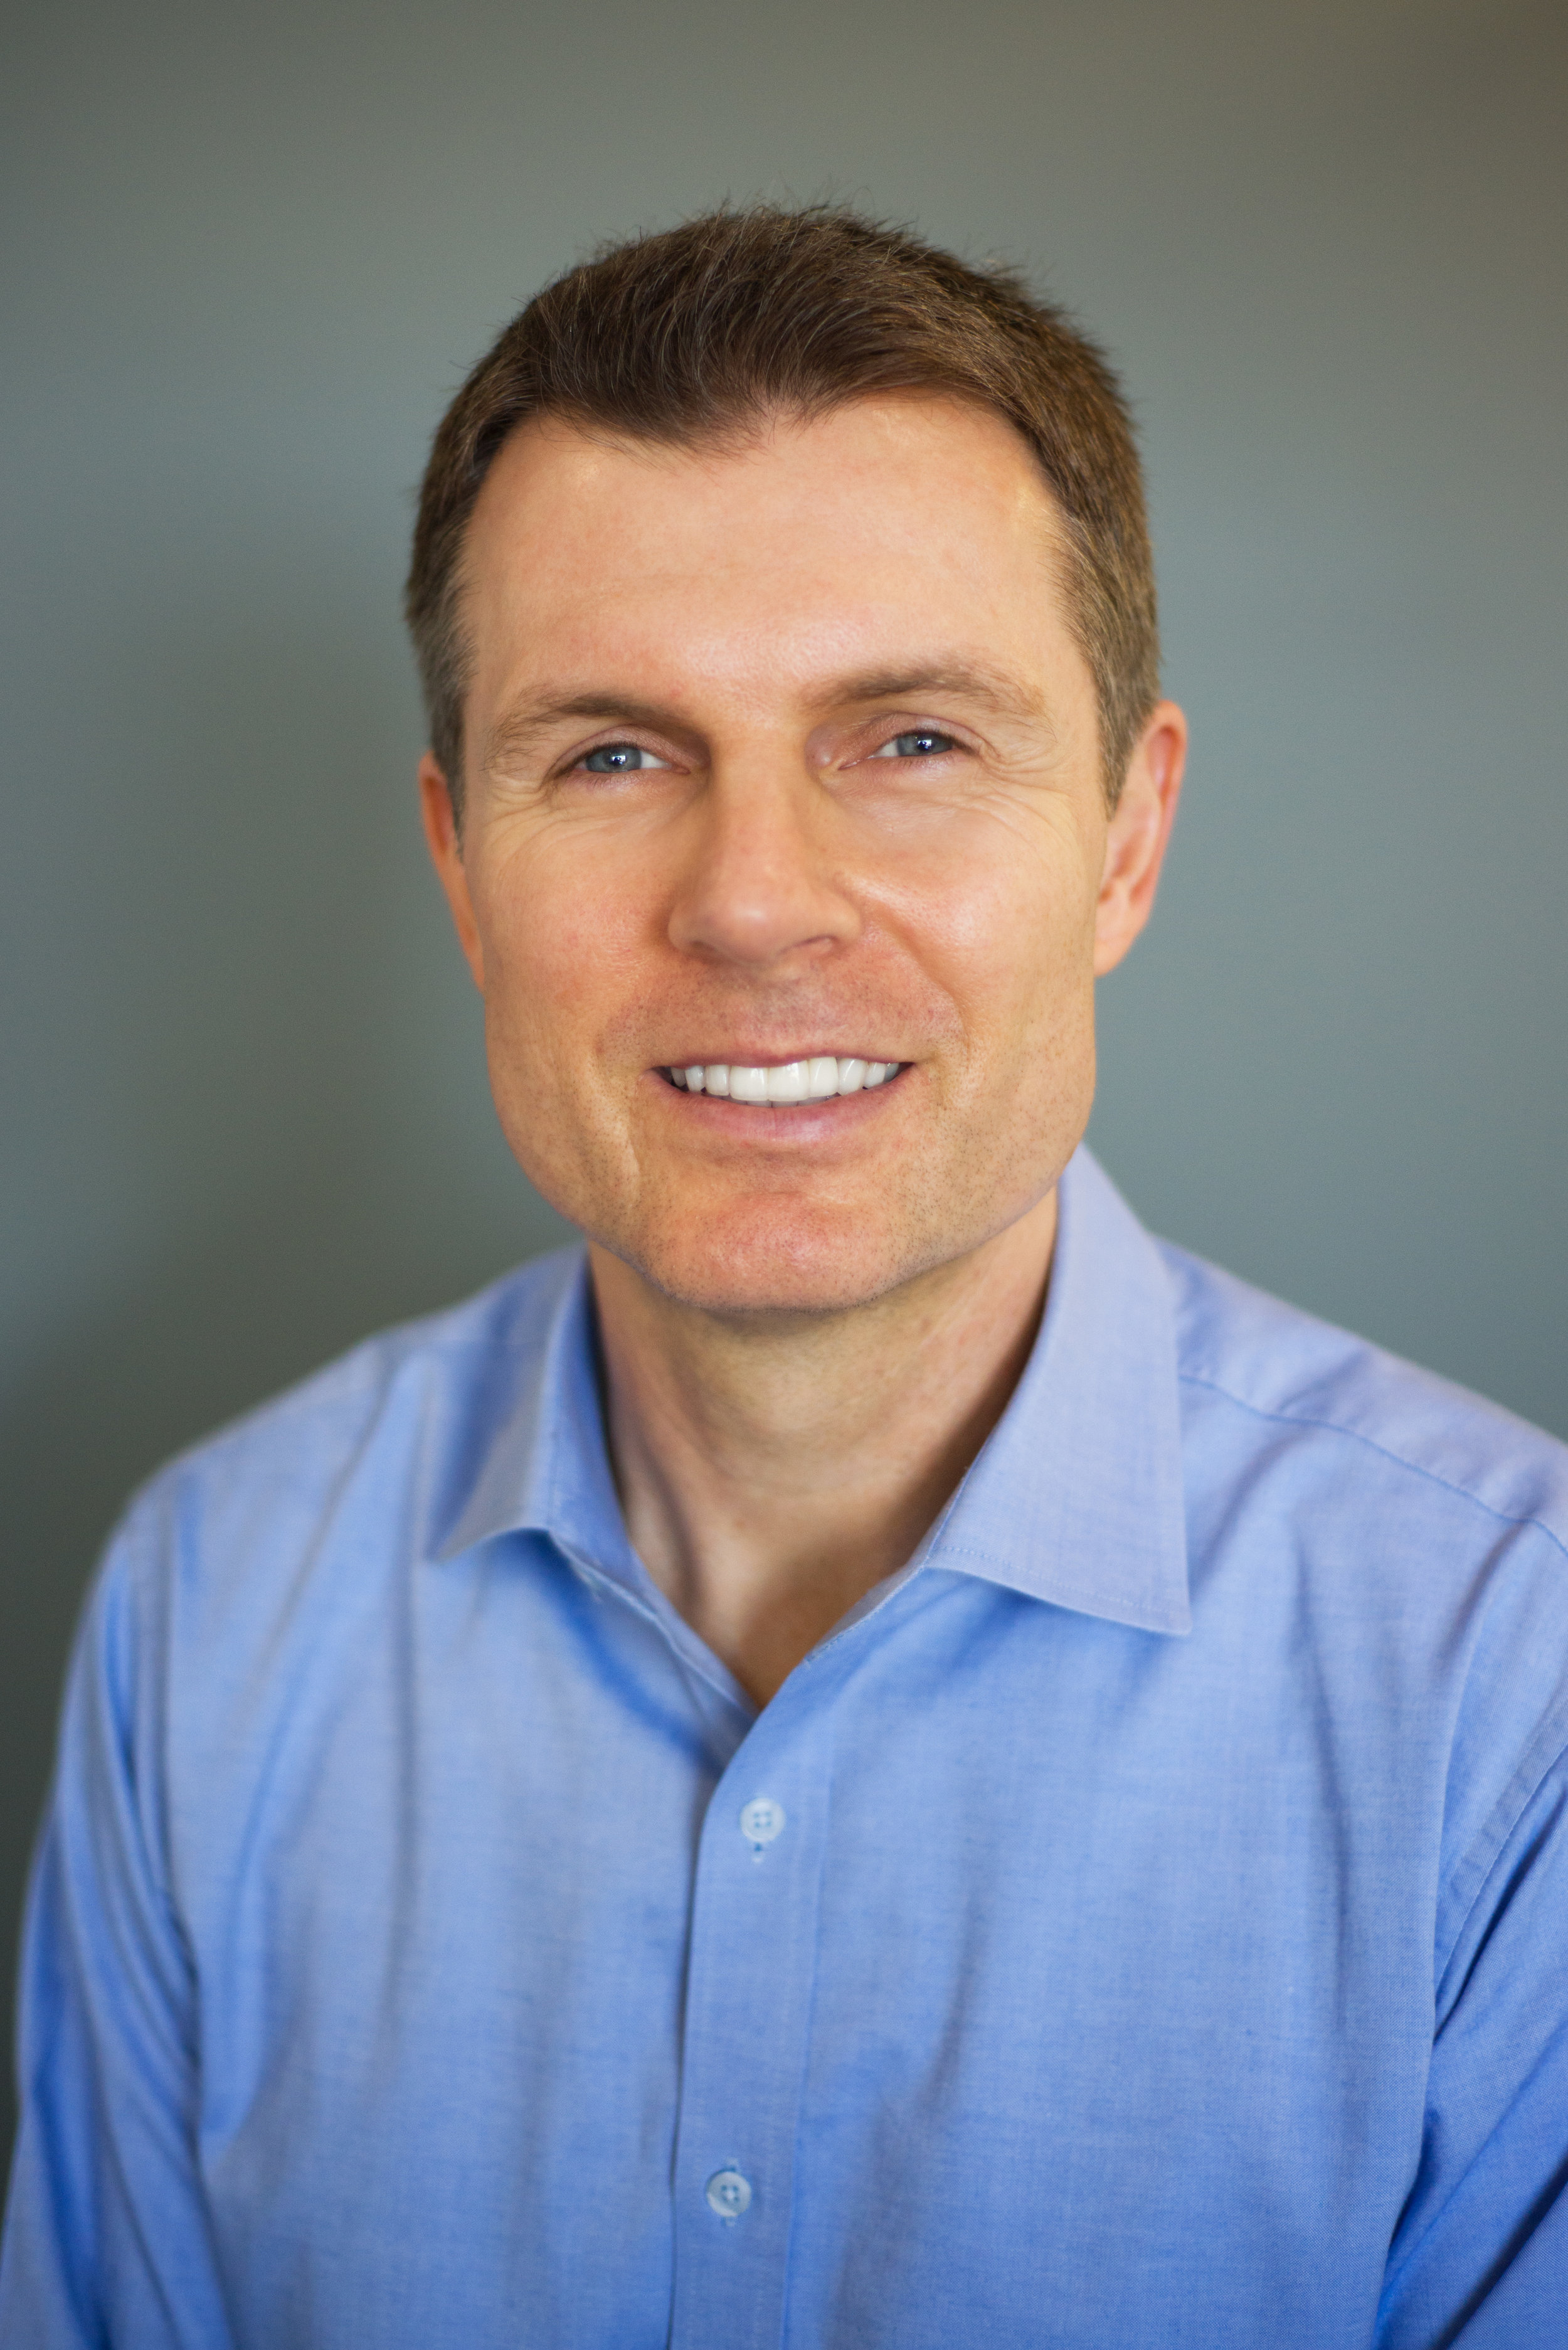 Dr. Paul is empathetic and understands the value of DPC in restoring the patient-doctor relationship.